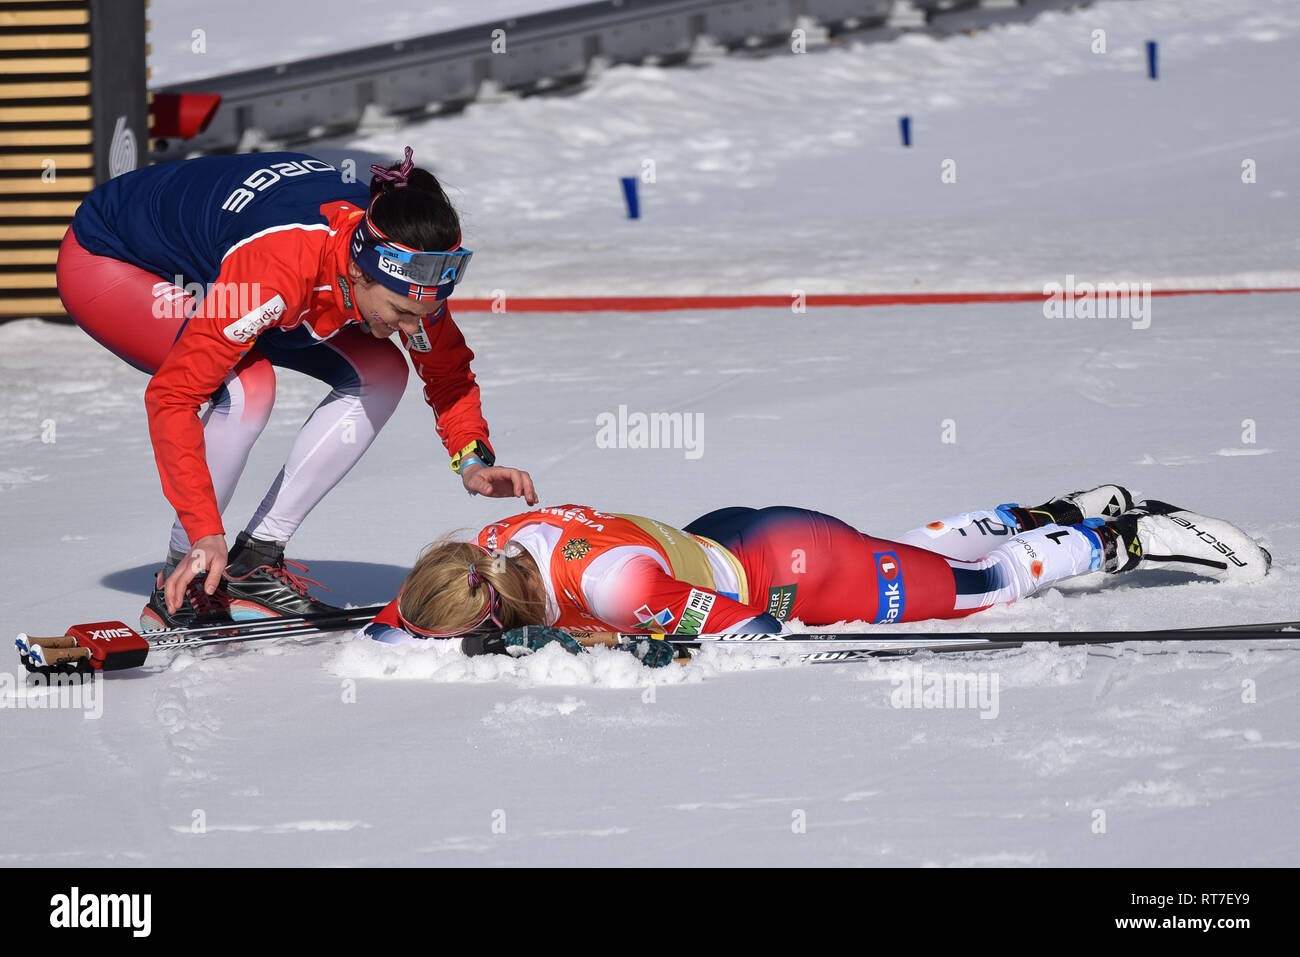 Seefeld, Austria, 28th February, 2019. How hot was it? So hot that the Norwegian Ski Team's number 1 skier, Therese Johaug, took an immediate dive into the snow after finishing the anchor leg of the women's relay at the nordic world ski championships.  Temperatures were in the 50s. Norway finished fifth.  Temate Heidi Weng approaches Johaug. © John Lazenby/Alamy Live News. - Stock Image